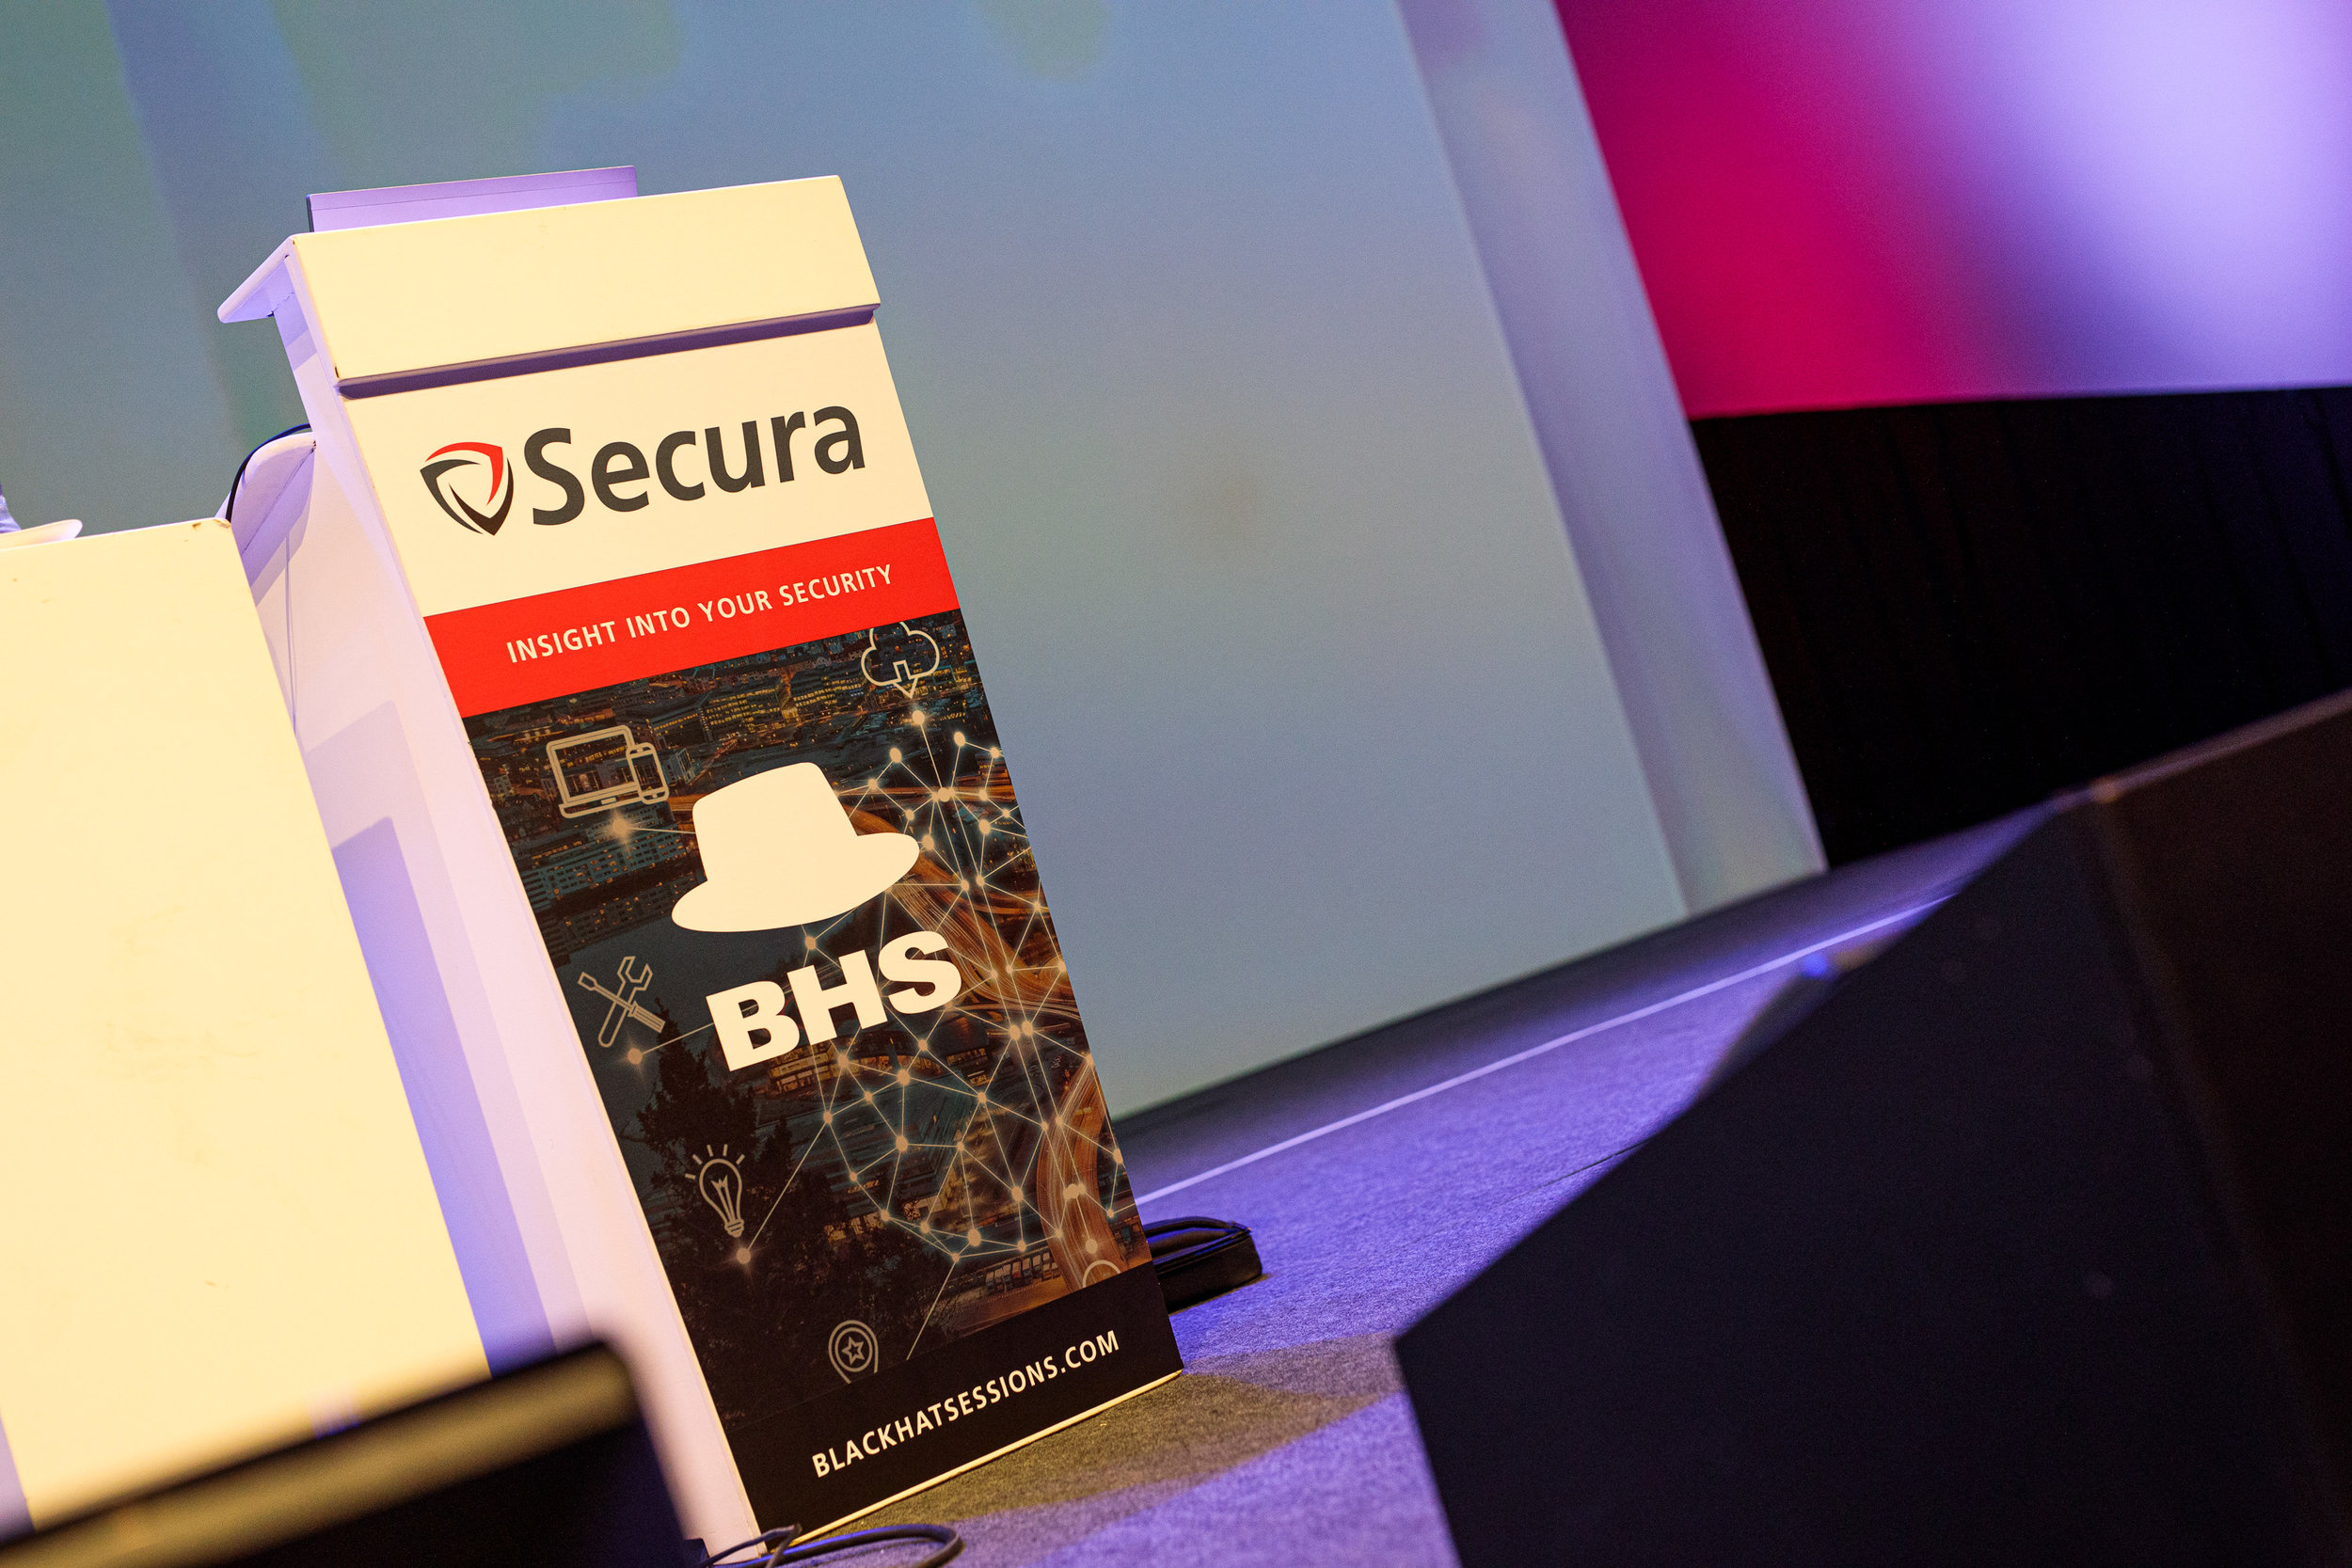 ORGANISER - The Black Hat Sessions is Secura's annual security conference. Launched sixteen years ago as an afternoon to share knowledge, it has grown into a renowned event in the world of IT security.